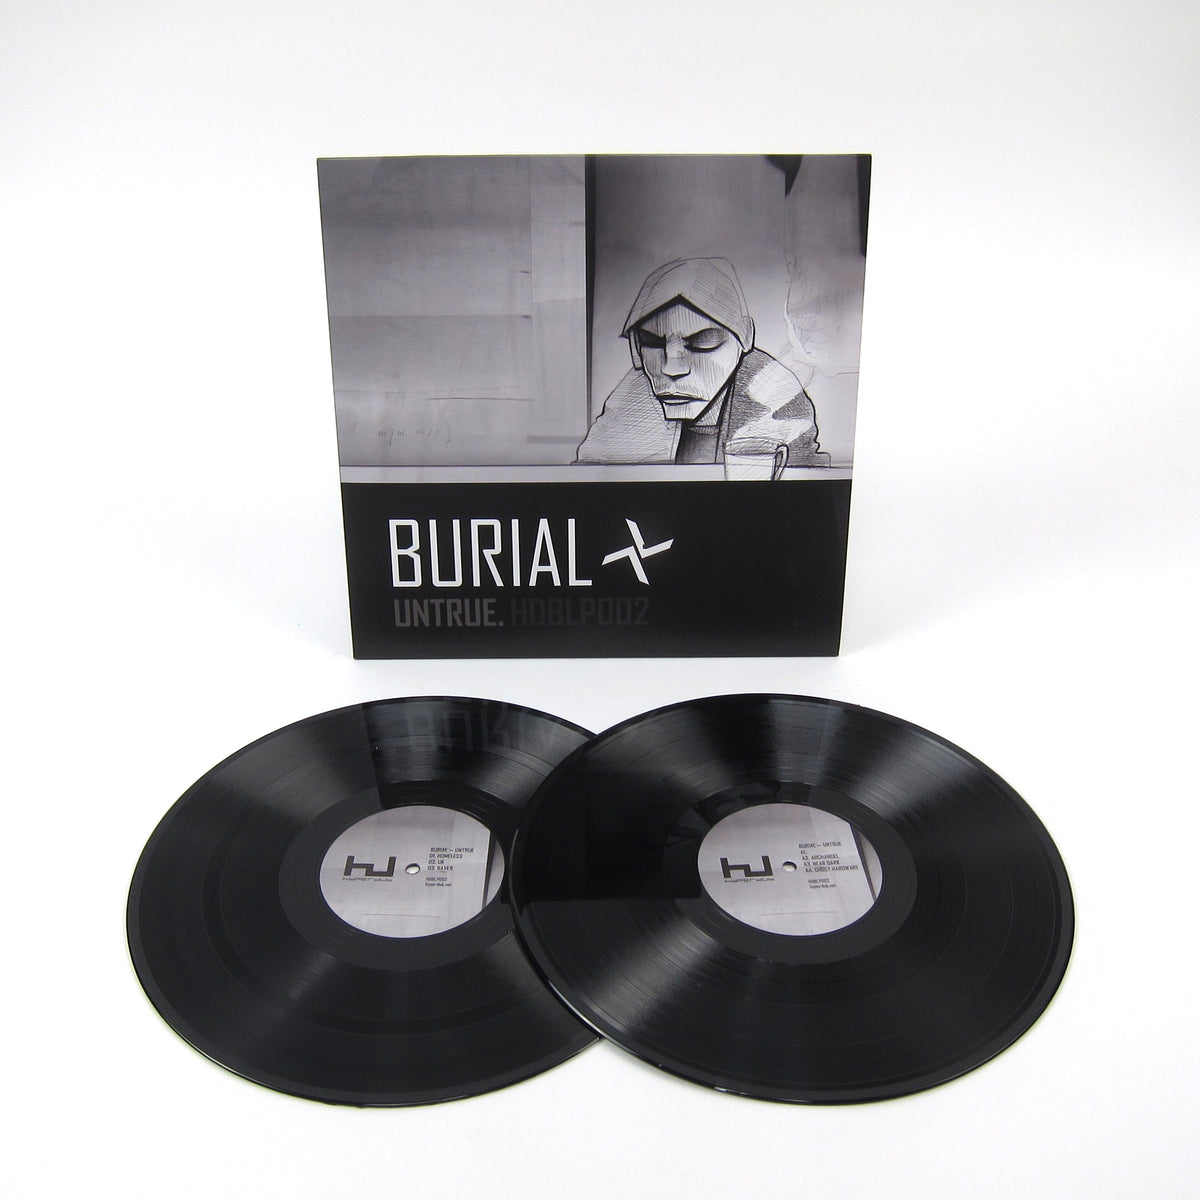 Burial: Untrue Vinyl 2LP